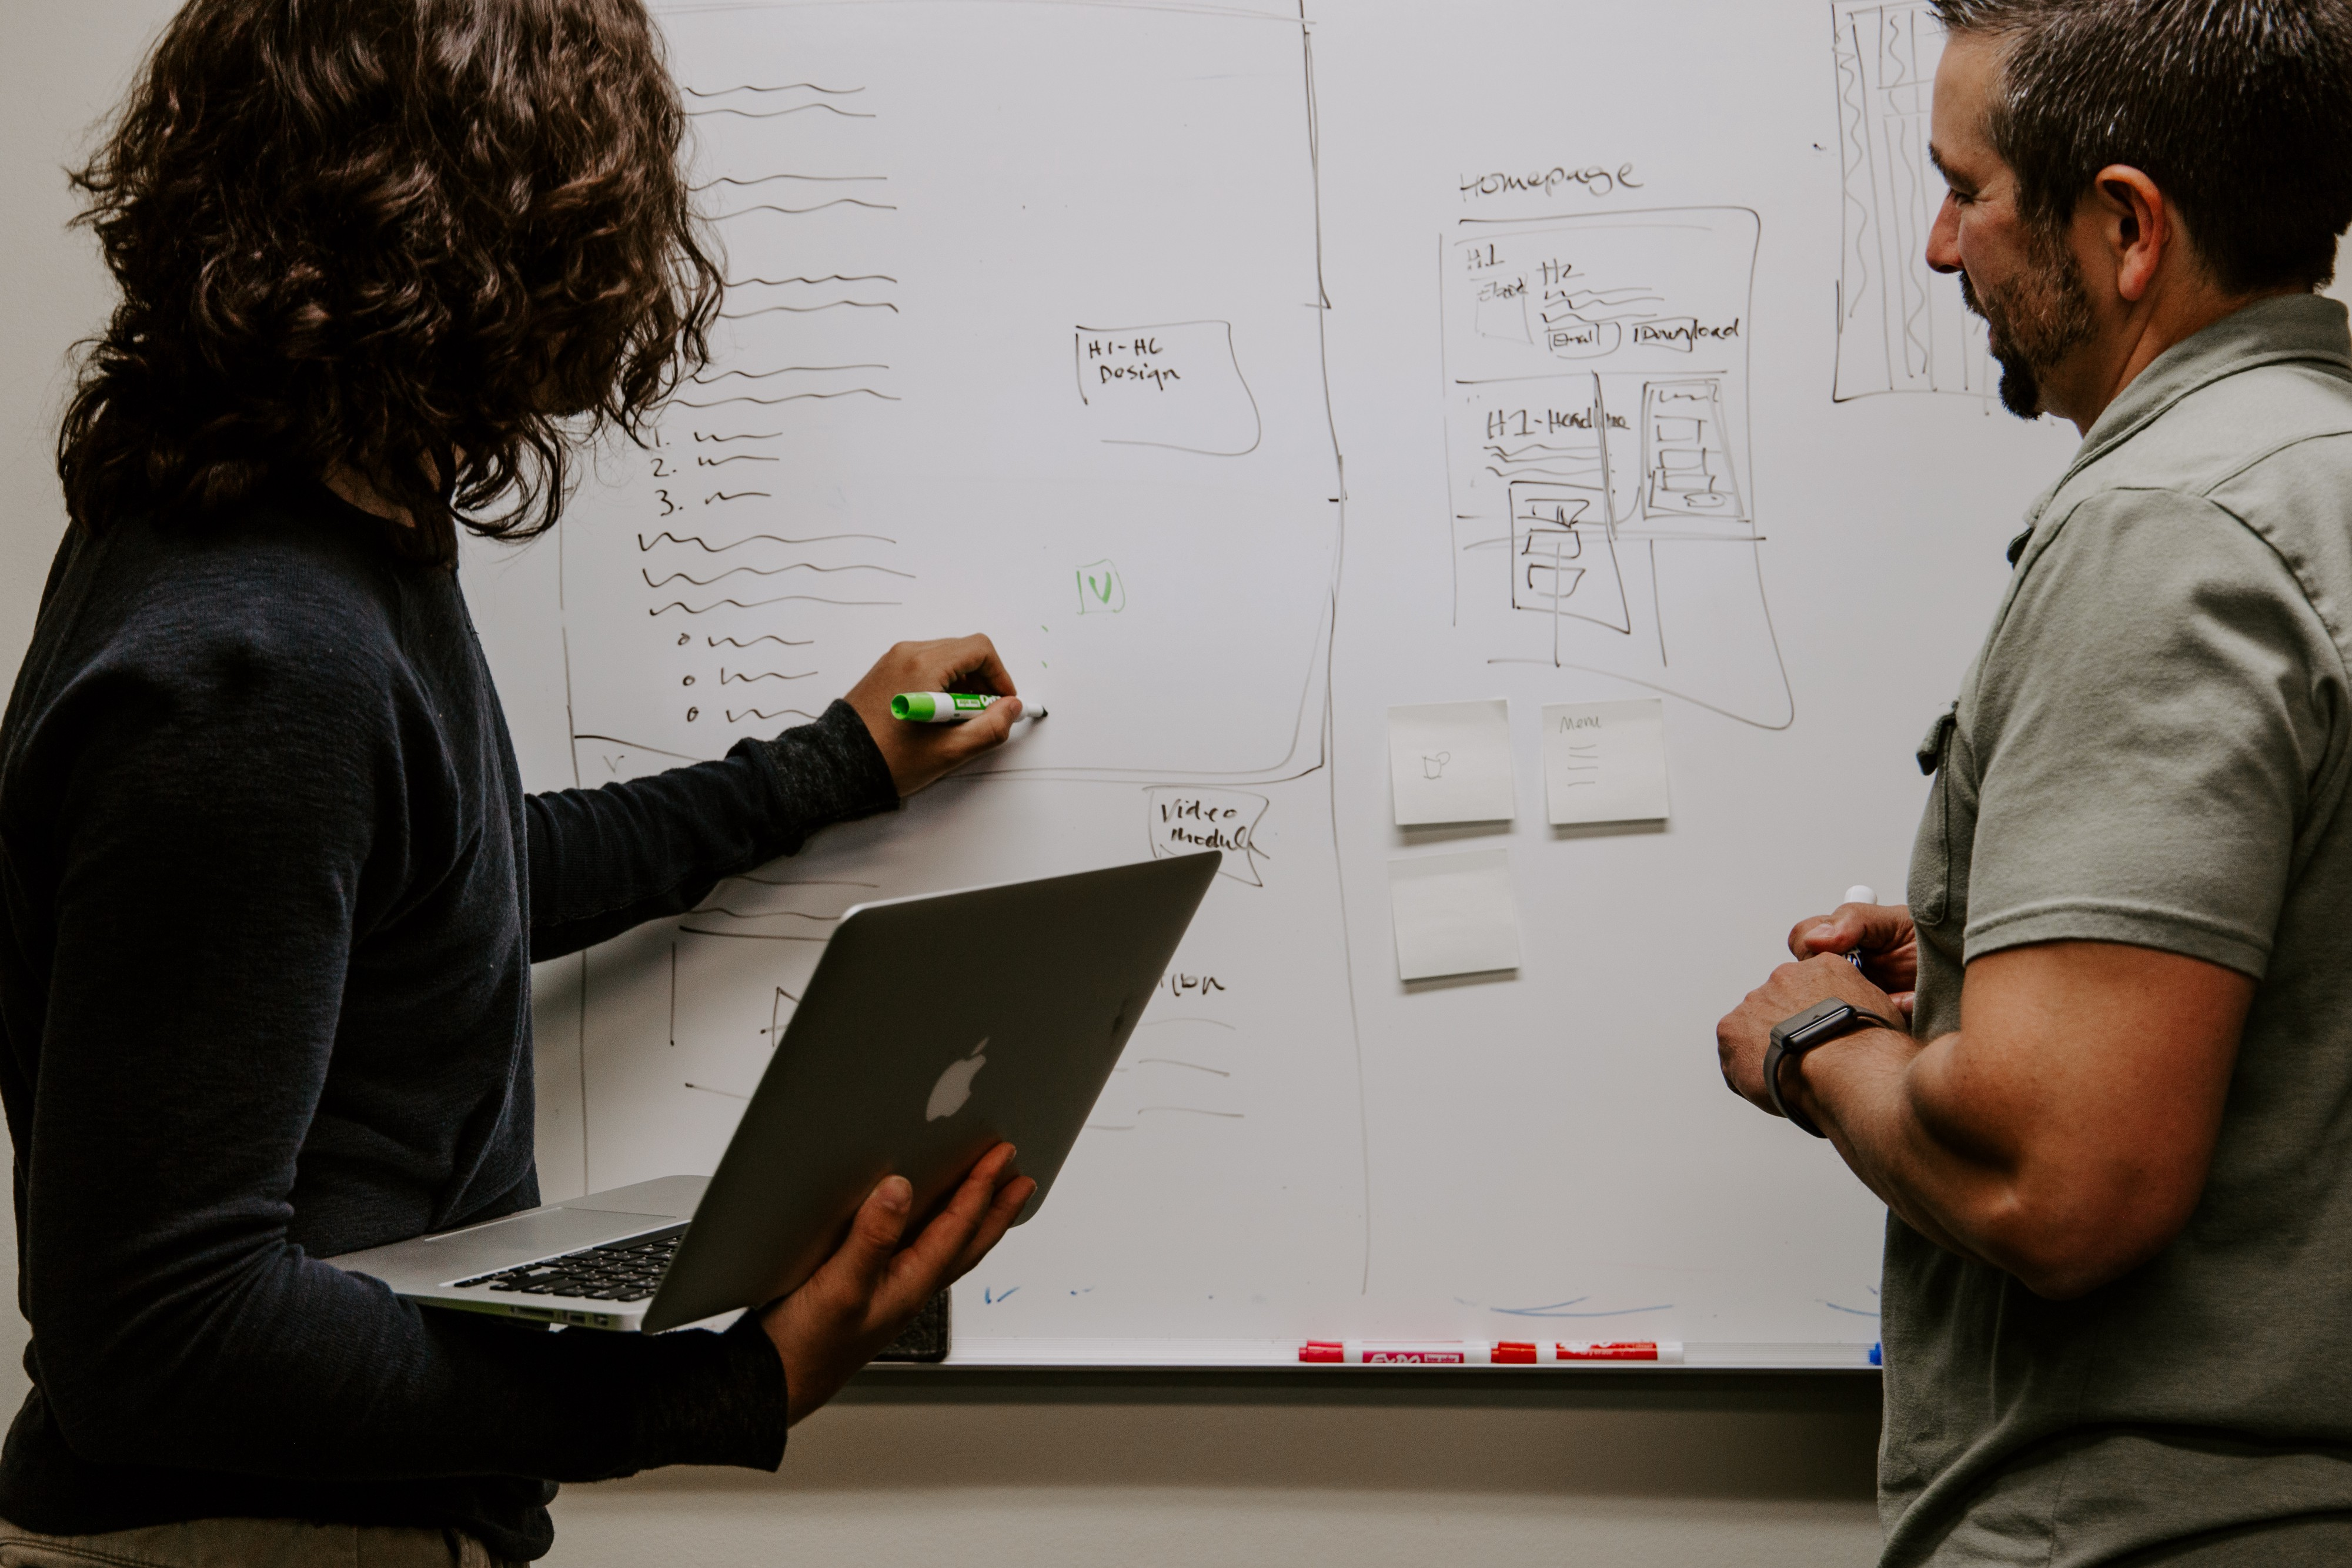 Two colleagues brainstorming on a whiteboard